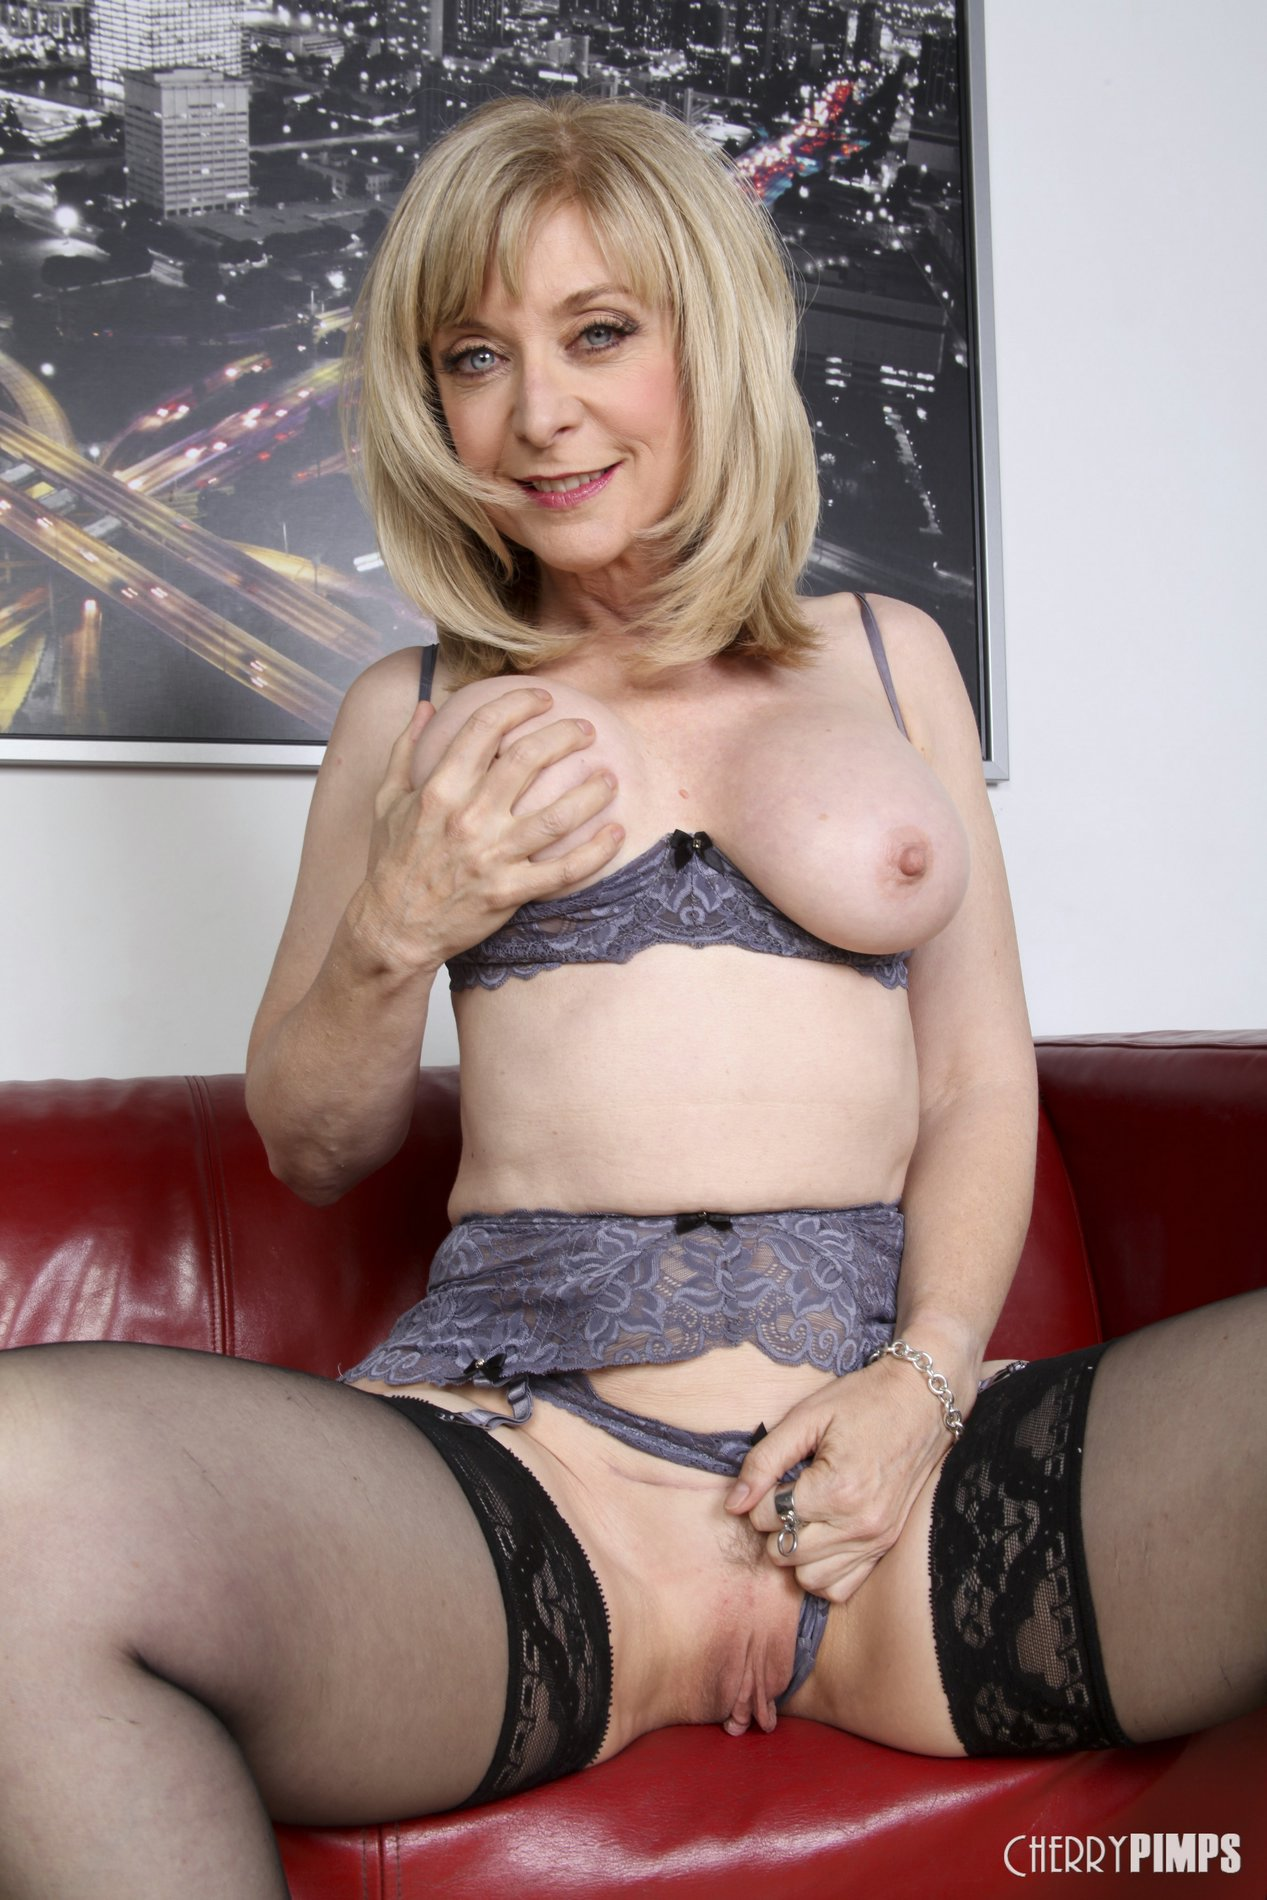 Anal milf nina hartley swallows - 1 part 6